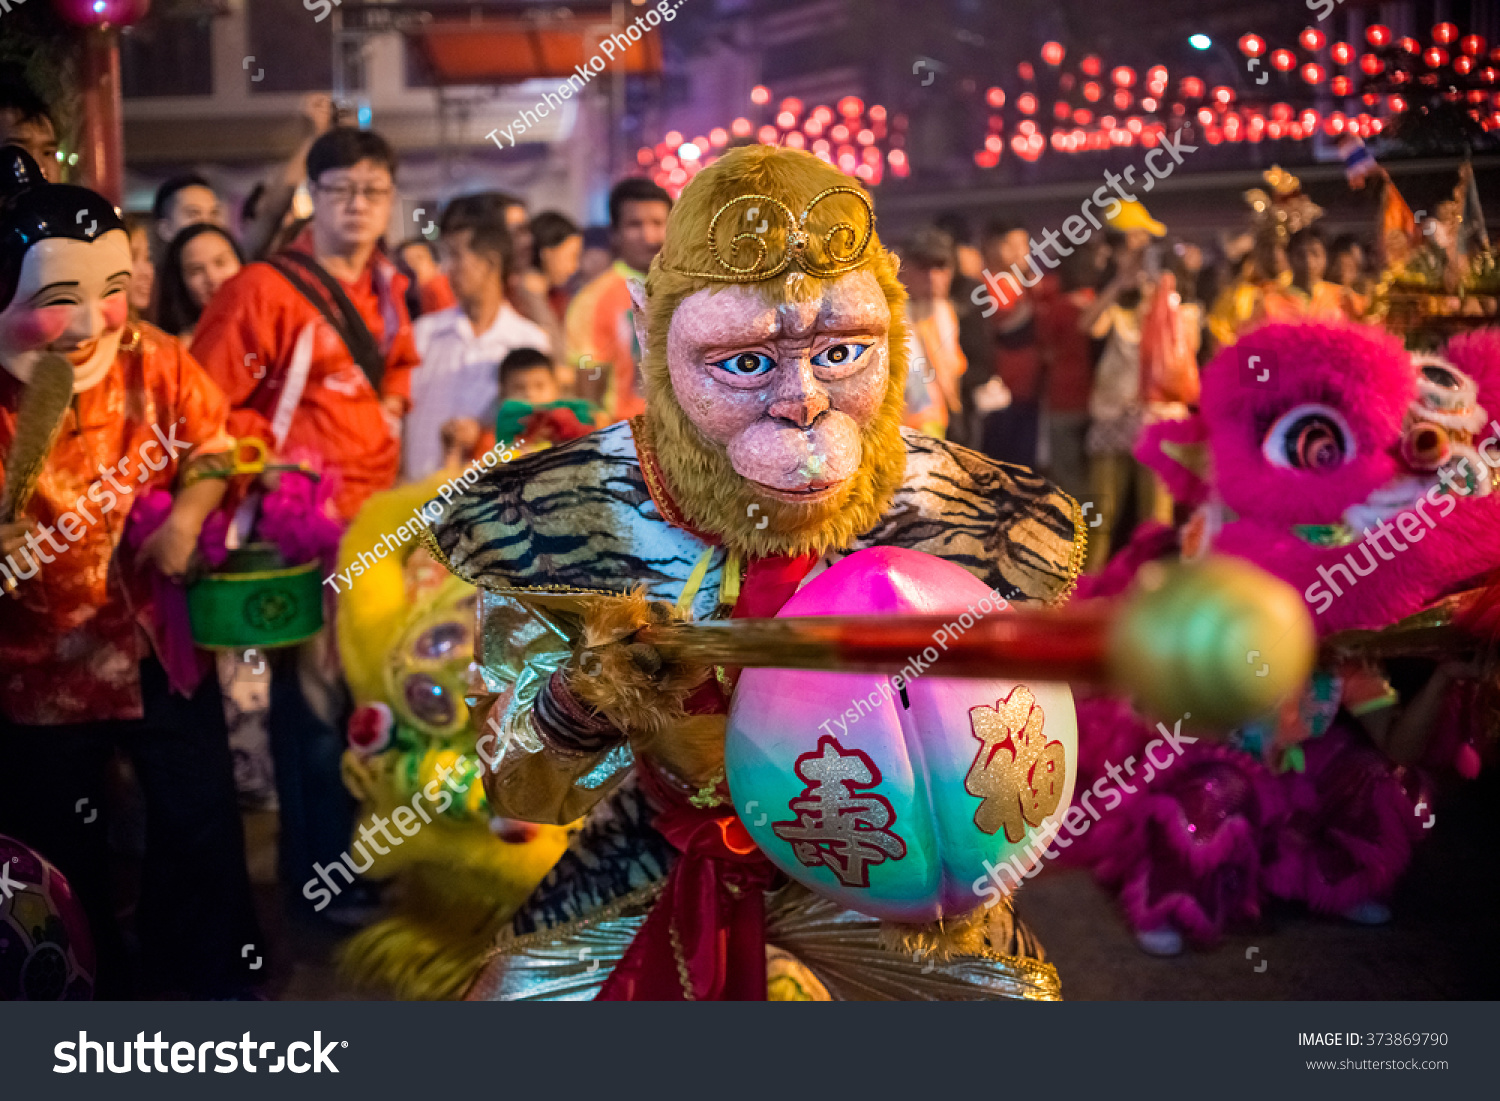 Carnival costumes for the New Year how to make yourself: a selection of sites